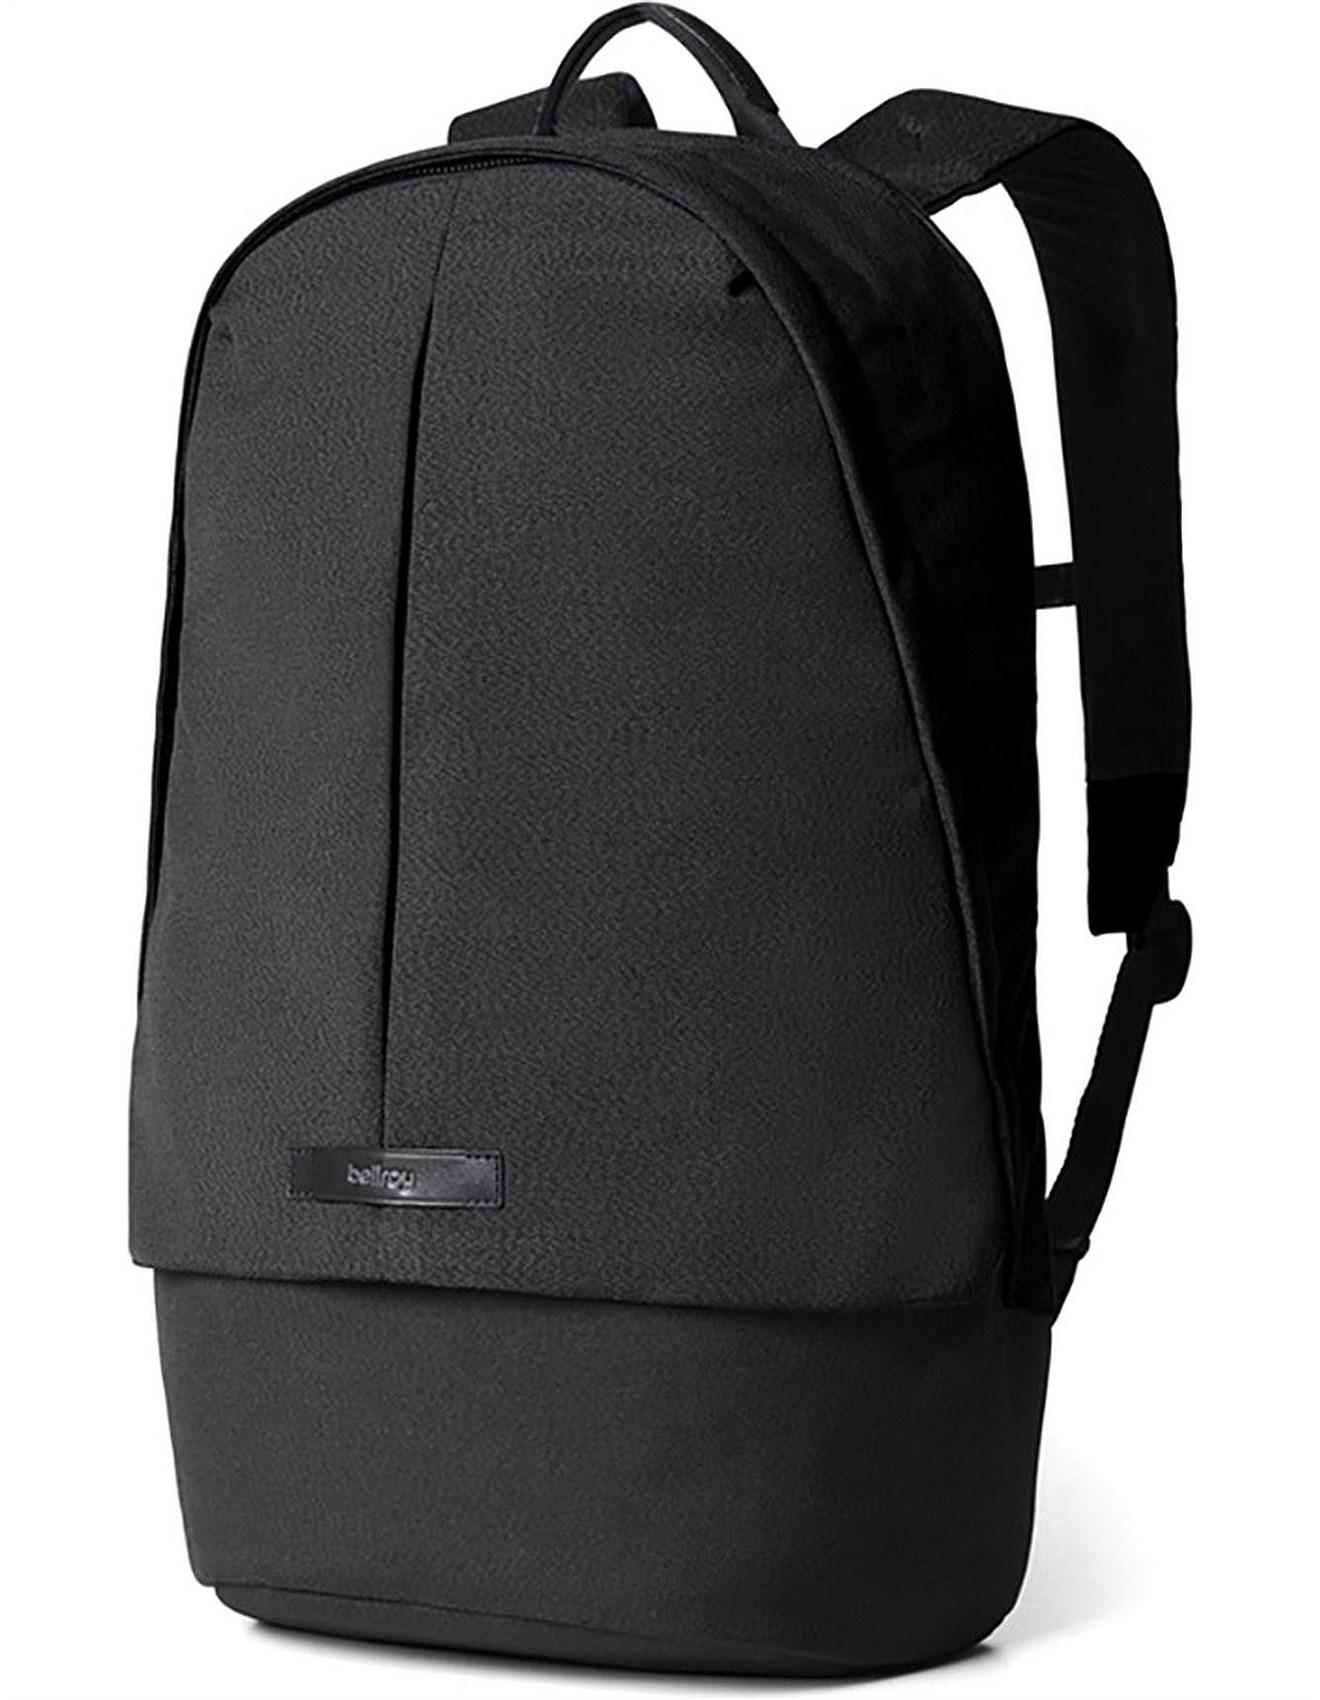 3728b8ad9e9e Bellroy - Black Classic Backpack Plus for Men - Lyst. View fullscreen